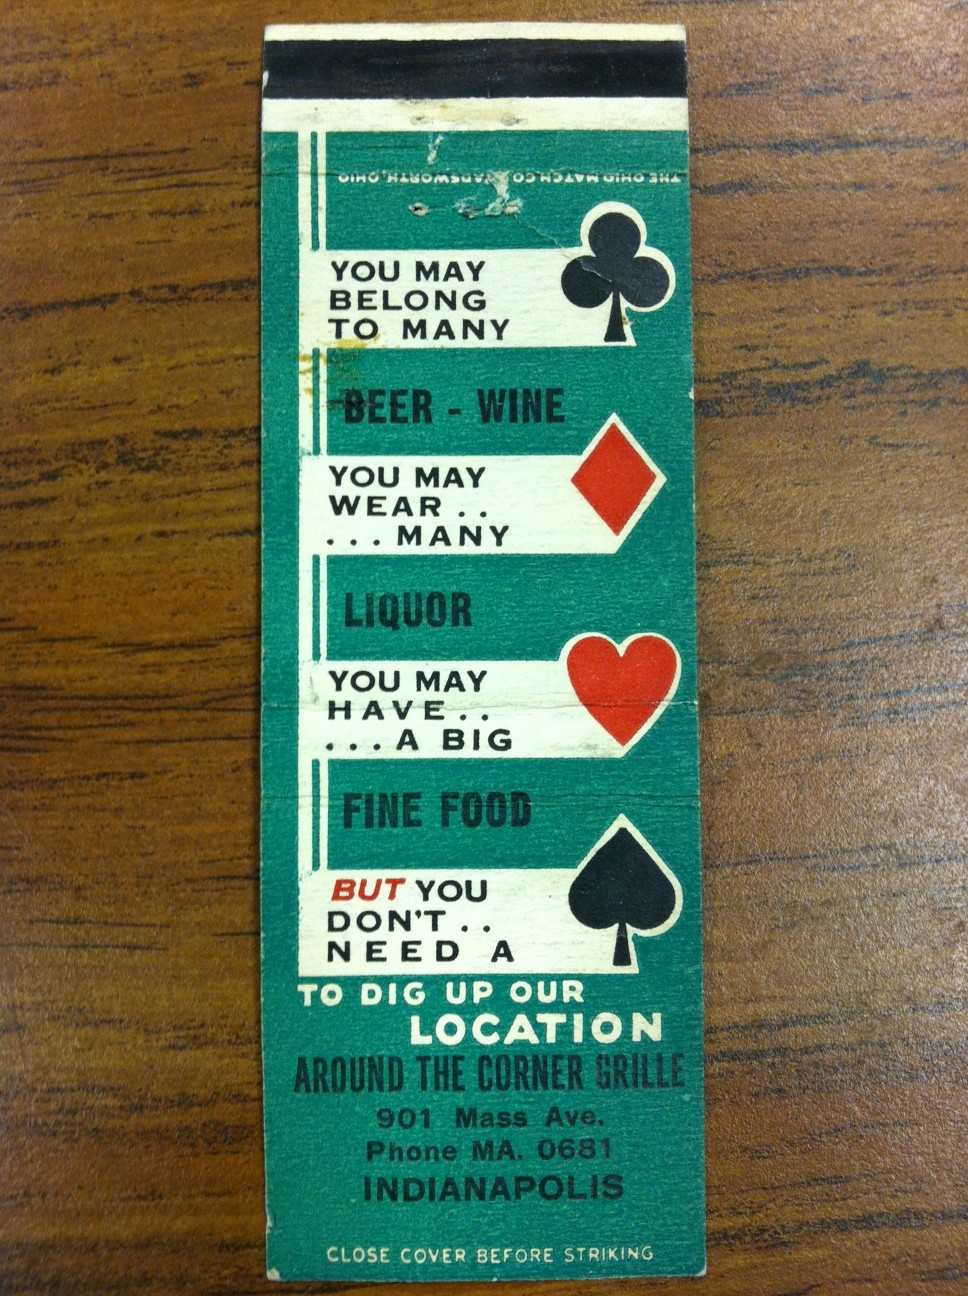 Sunday Adverts: Cafes of Mass Ave